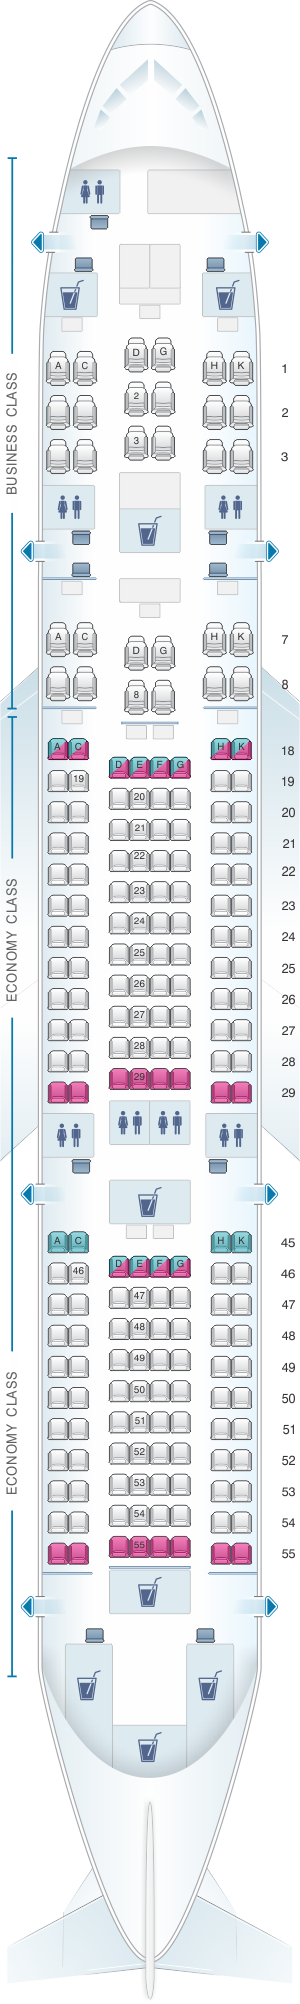 Seat map for Japan Airlines (JAL) Boeing B787-8 E03